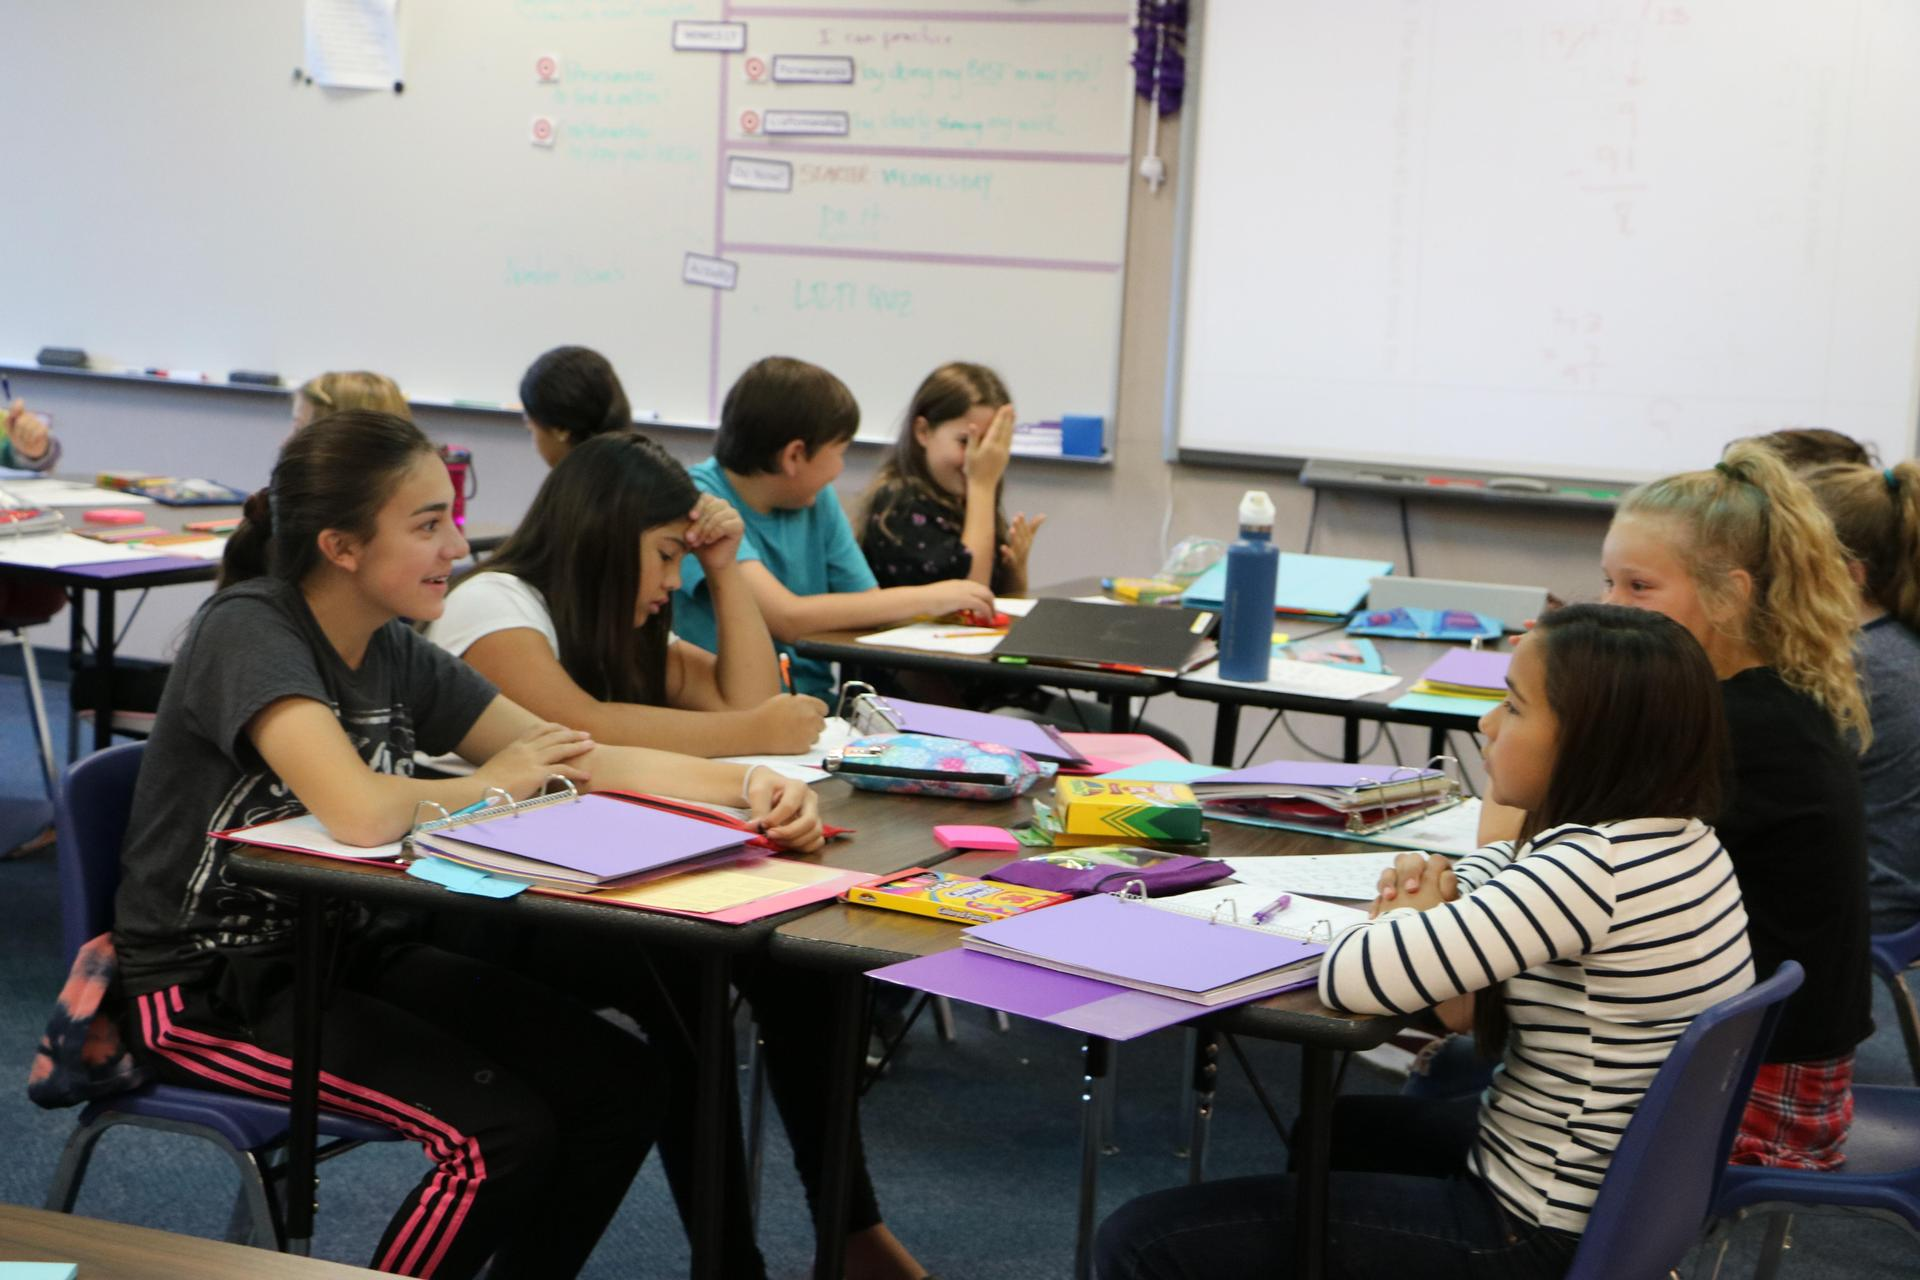 Students discuss and smile in a middle school math classroom.